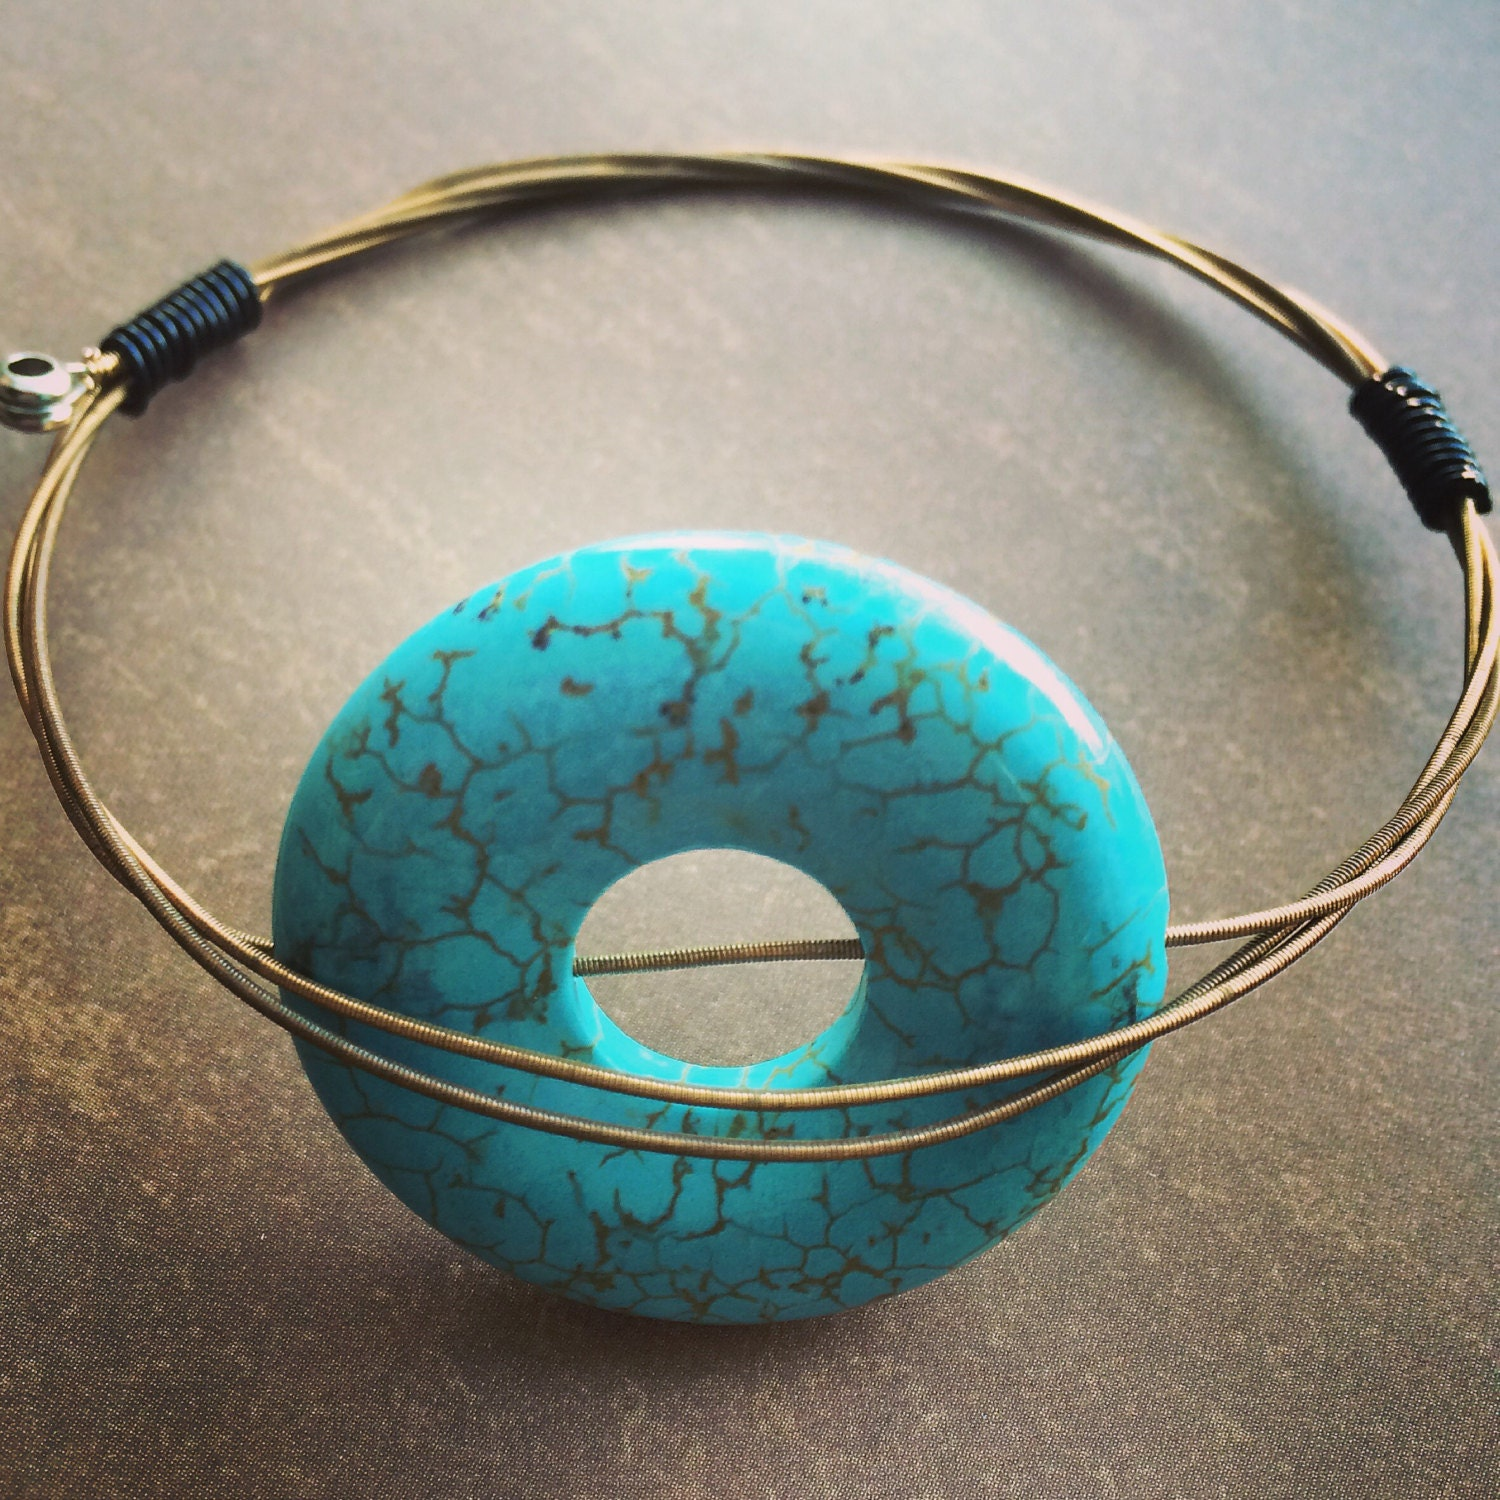 guitar string bangle with large turquoise bead. Black Bedroom Furniture Sets. Home Design Ideas